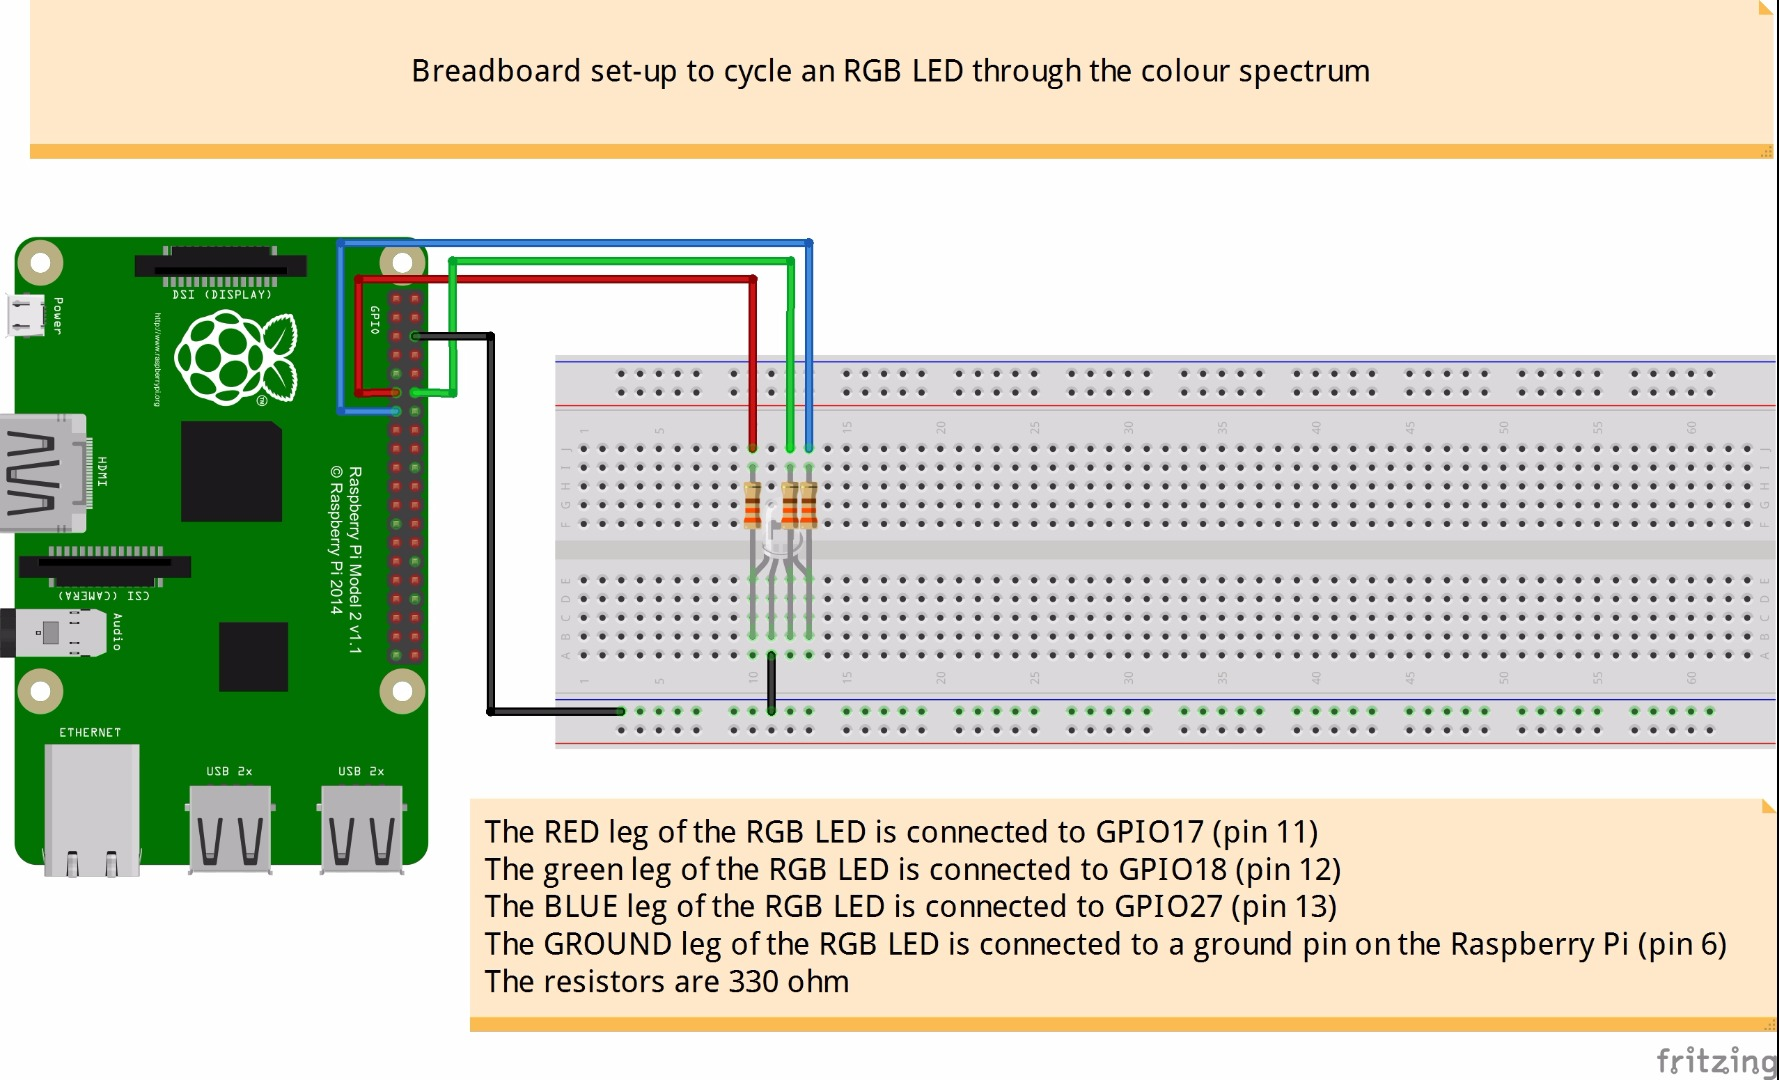 Cycle an RGB LED through the colour spectrum using a Raspberry Pi 2